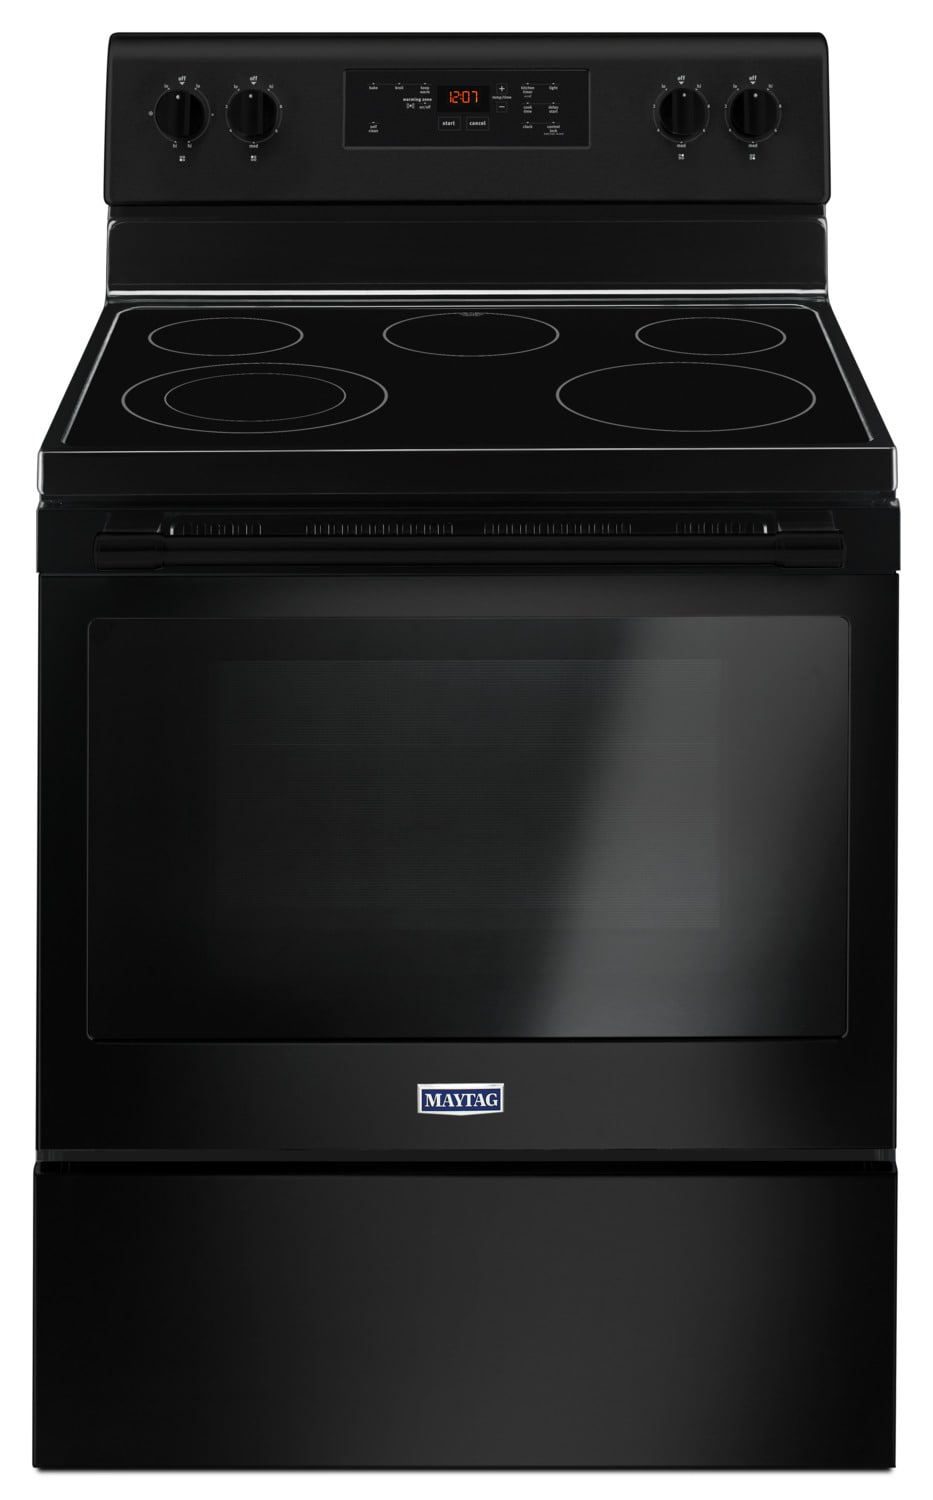 Maytag 5.3 Cu. Ft. Electric Freestanding Range – YMER6600FB